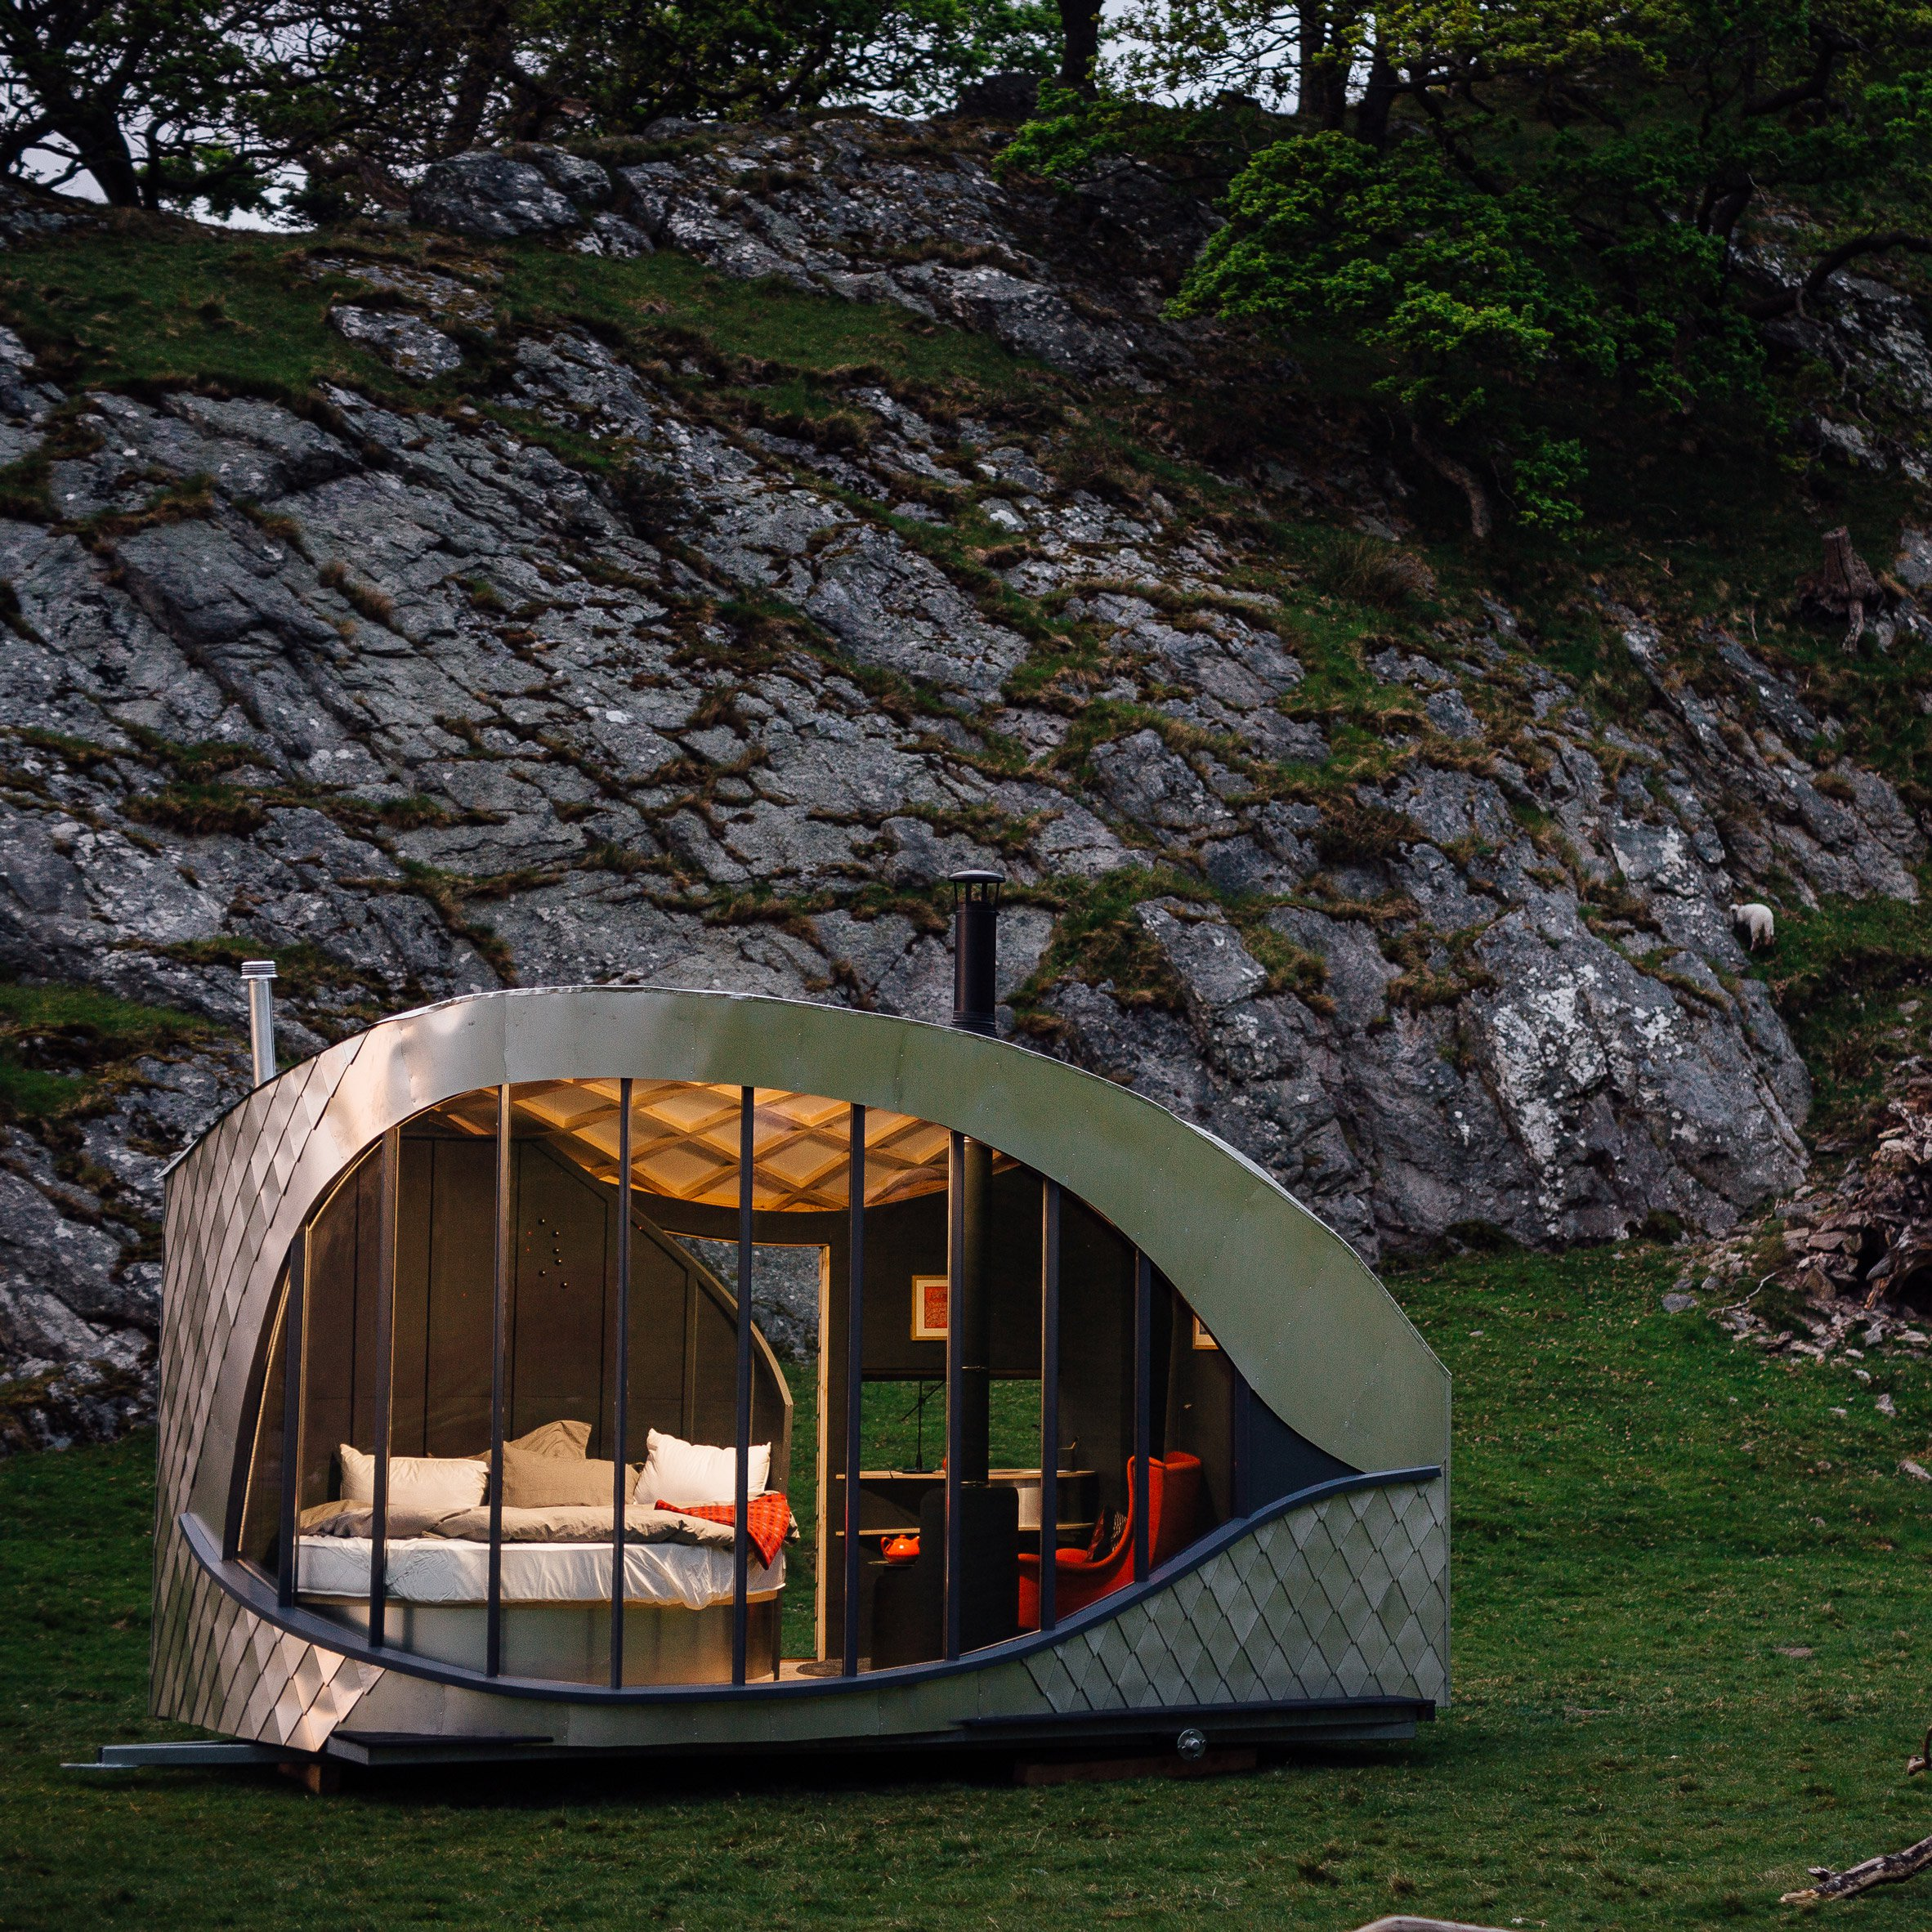 These glamping cabins were inspired by Welsh myths and legends